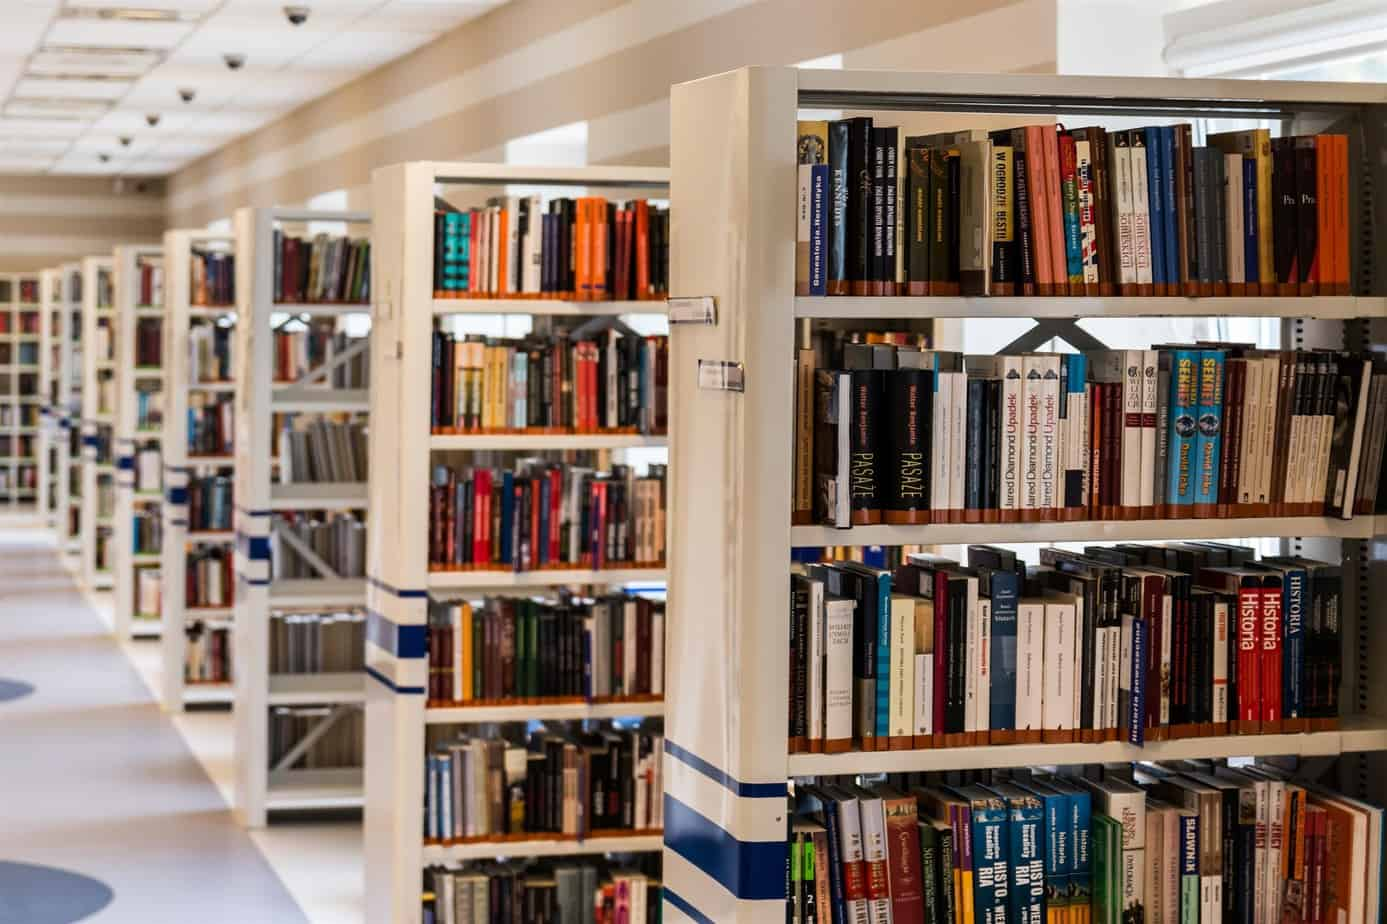 rows of bookshelves with books at a library